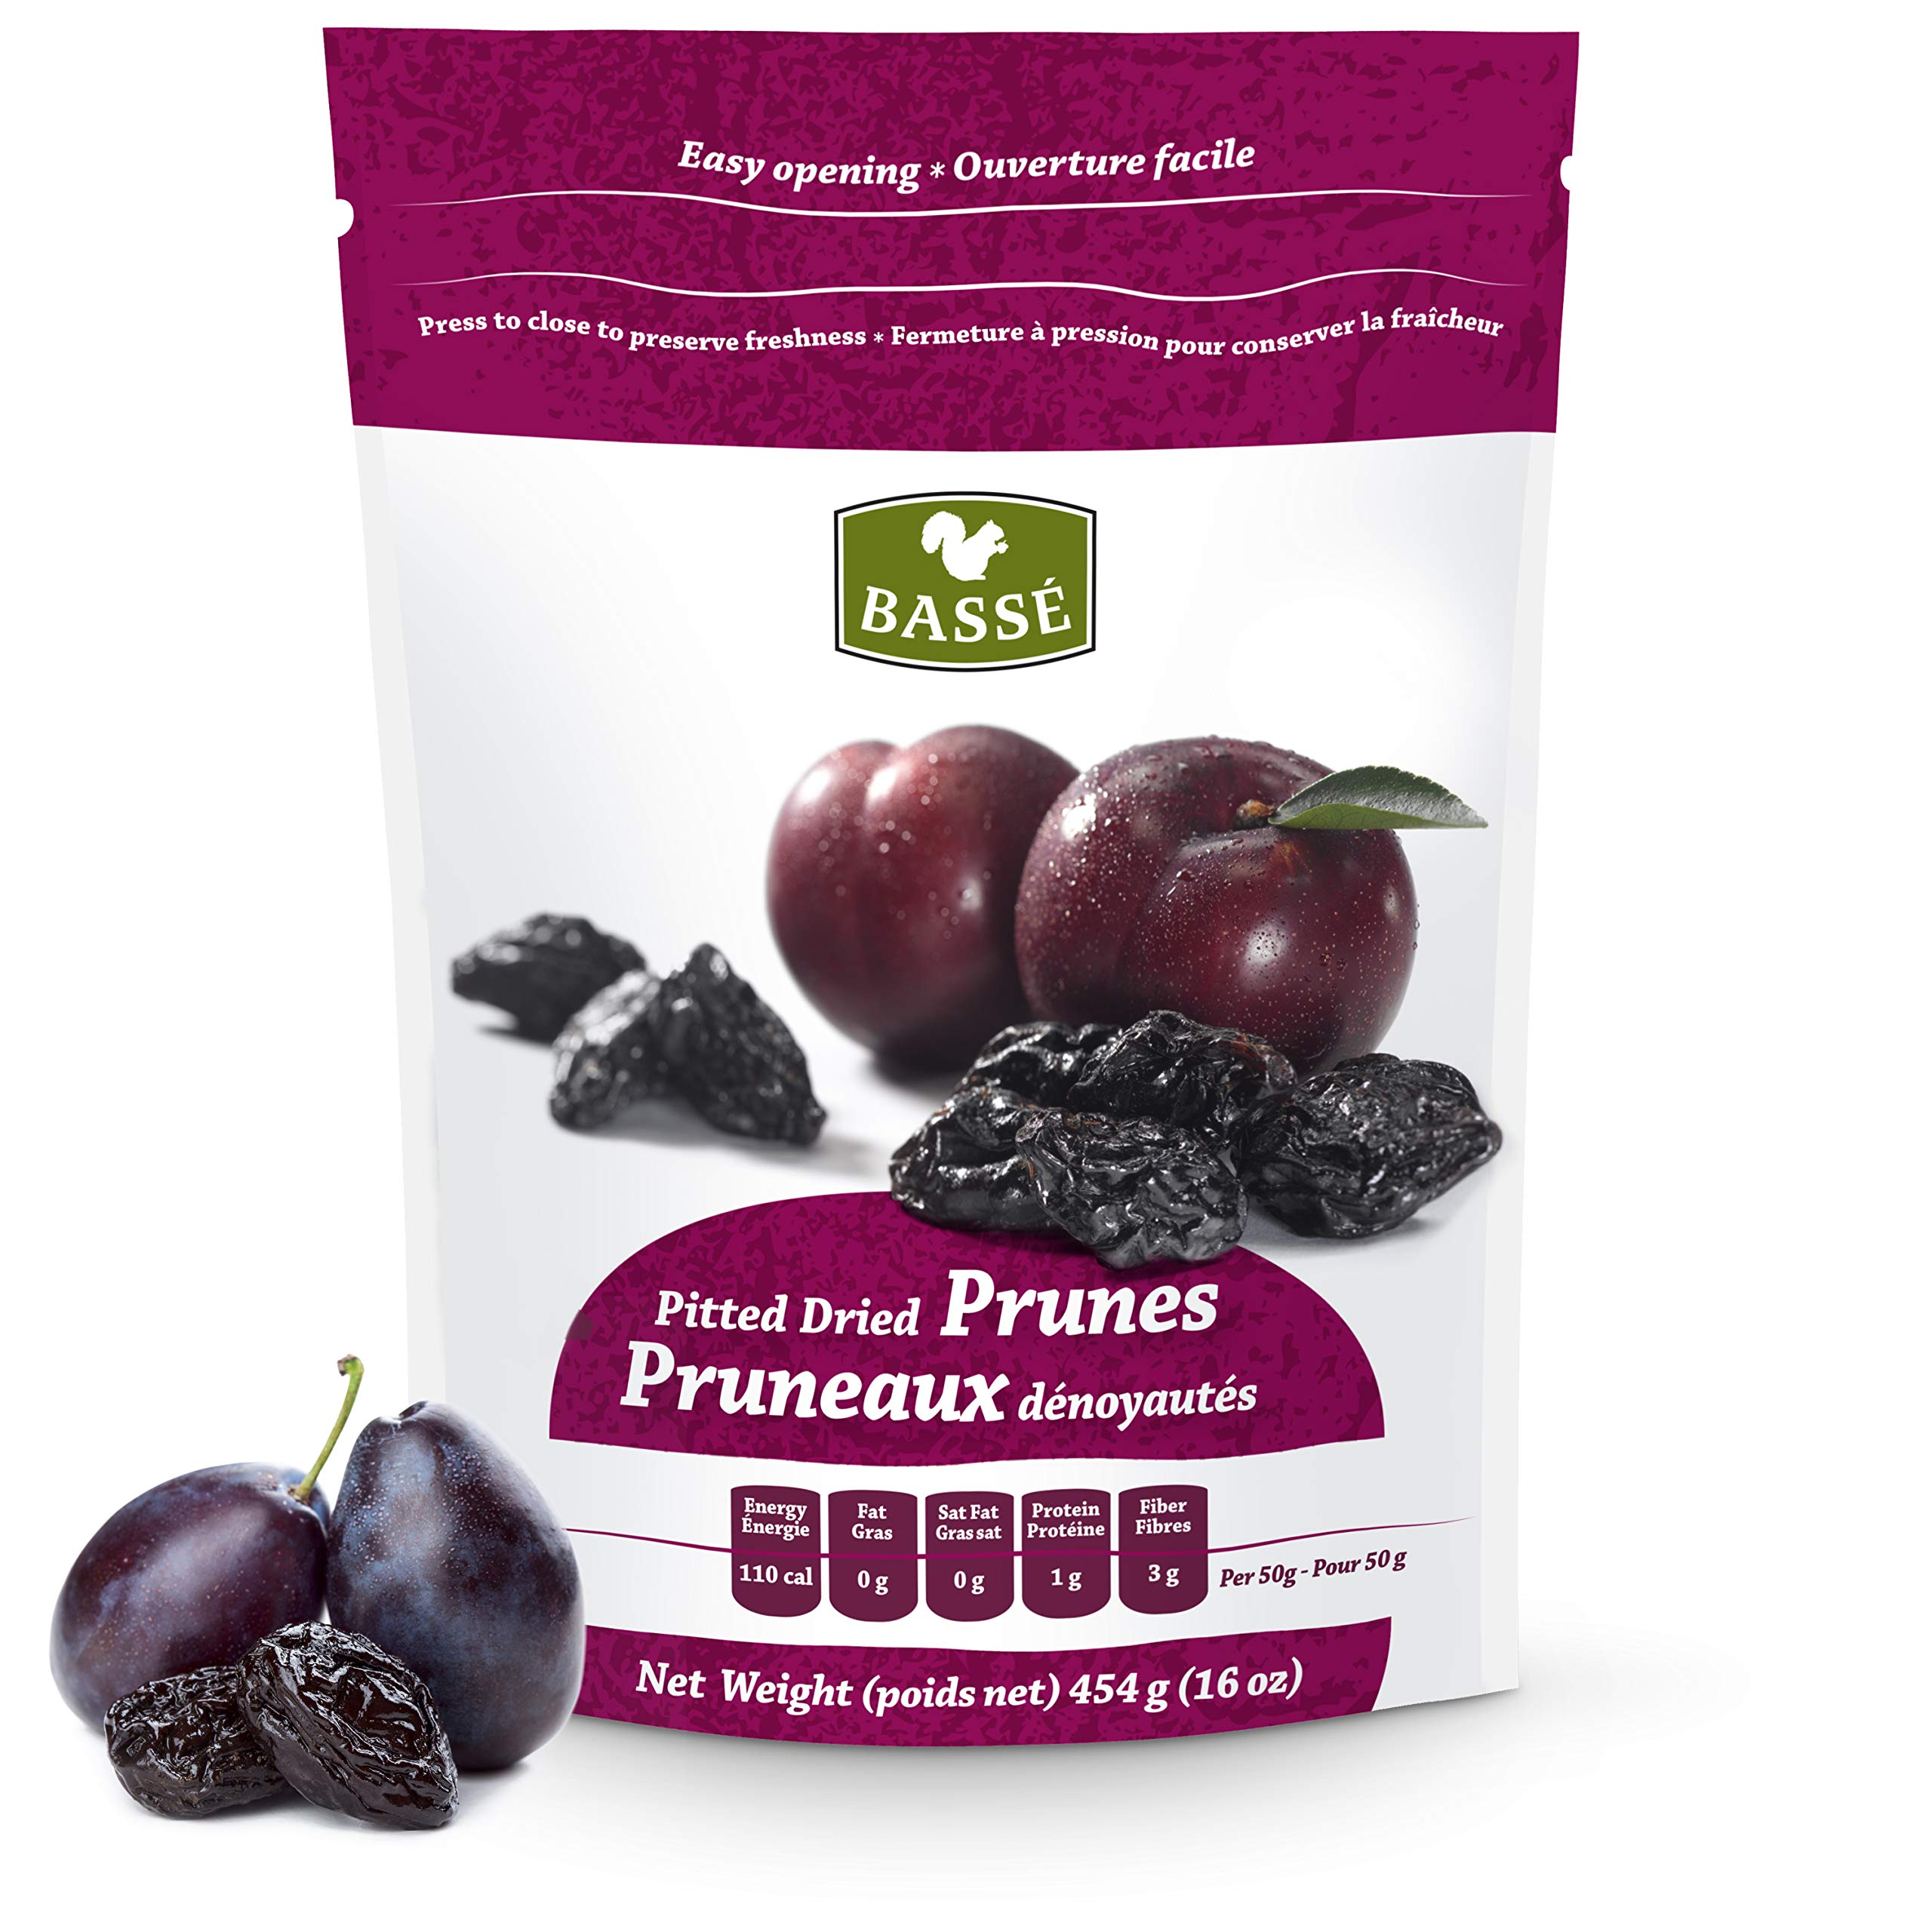 Prunes, 1 Pound Dried Pitted Prunes from Basse Dried Fruits - 16 oz Bag of Dried Prunes, Best Foods For Weight Loss, Delicious Sweet Prunes full of Nutrition and Health Benefits by Basse Nuts